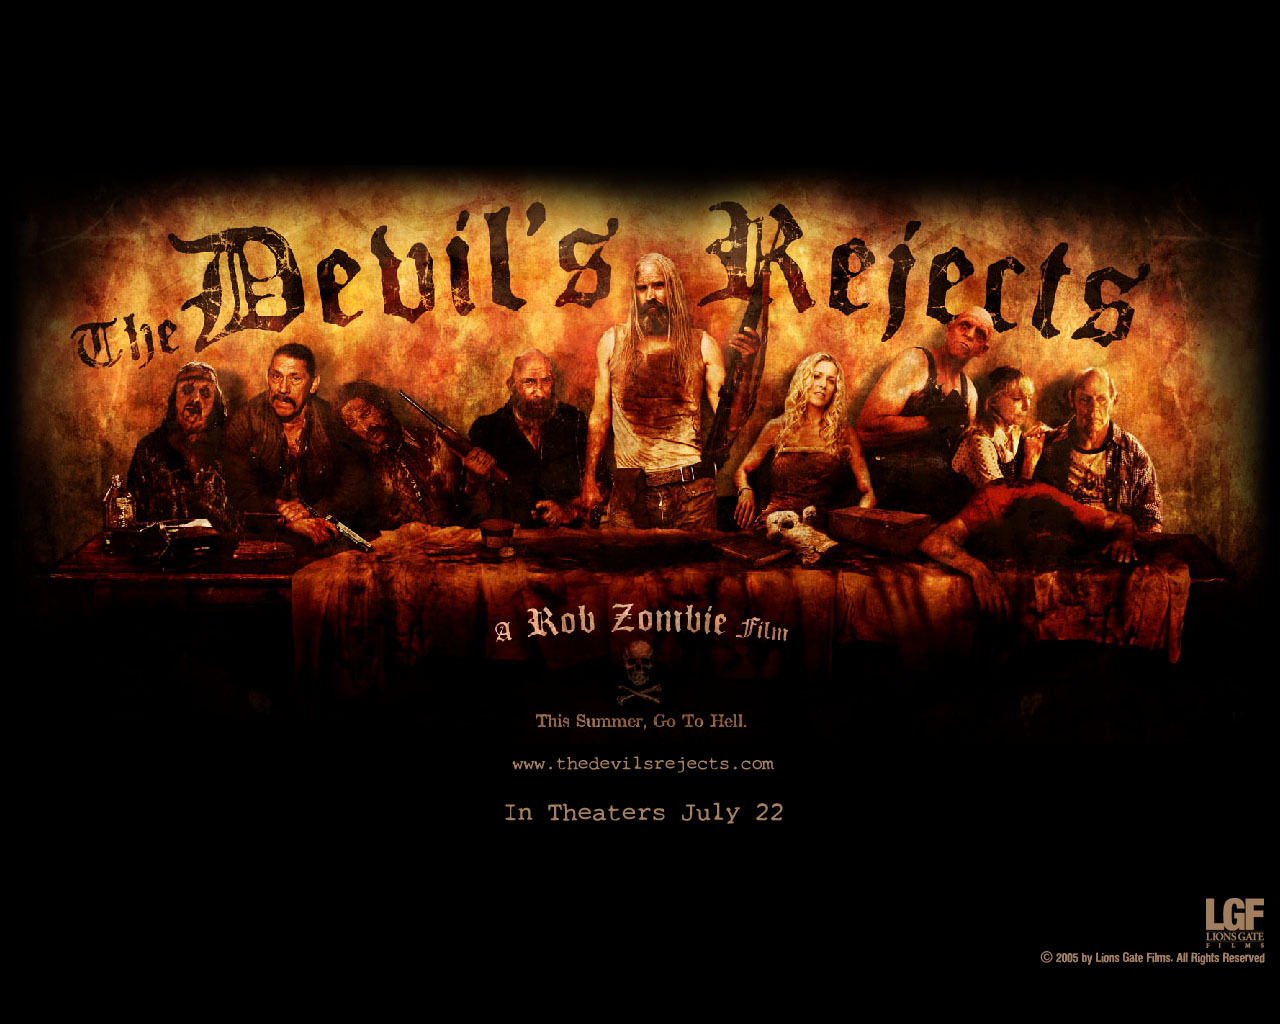 The Devil's Rejects wallpapers